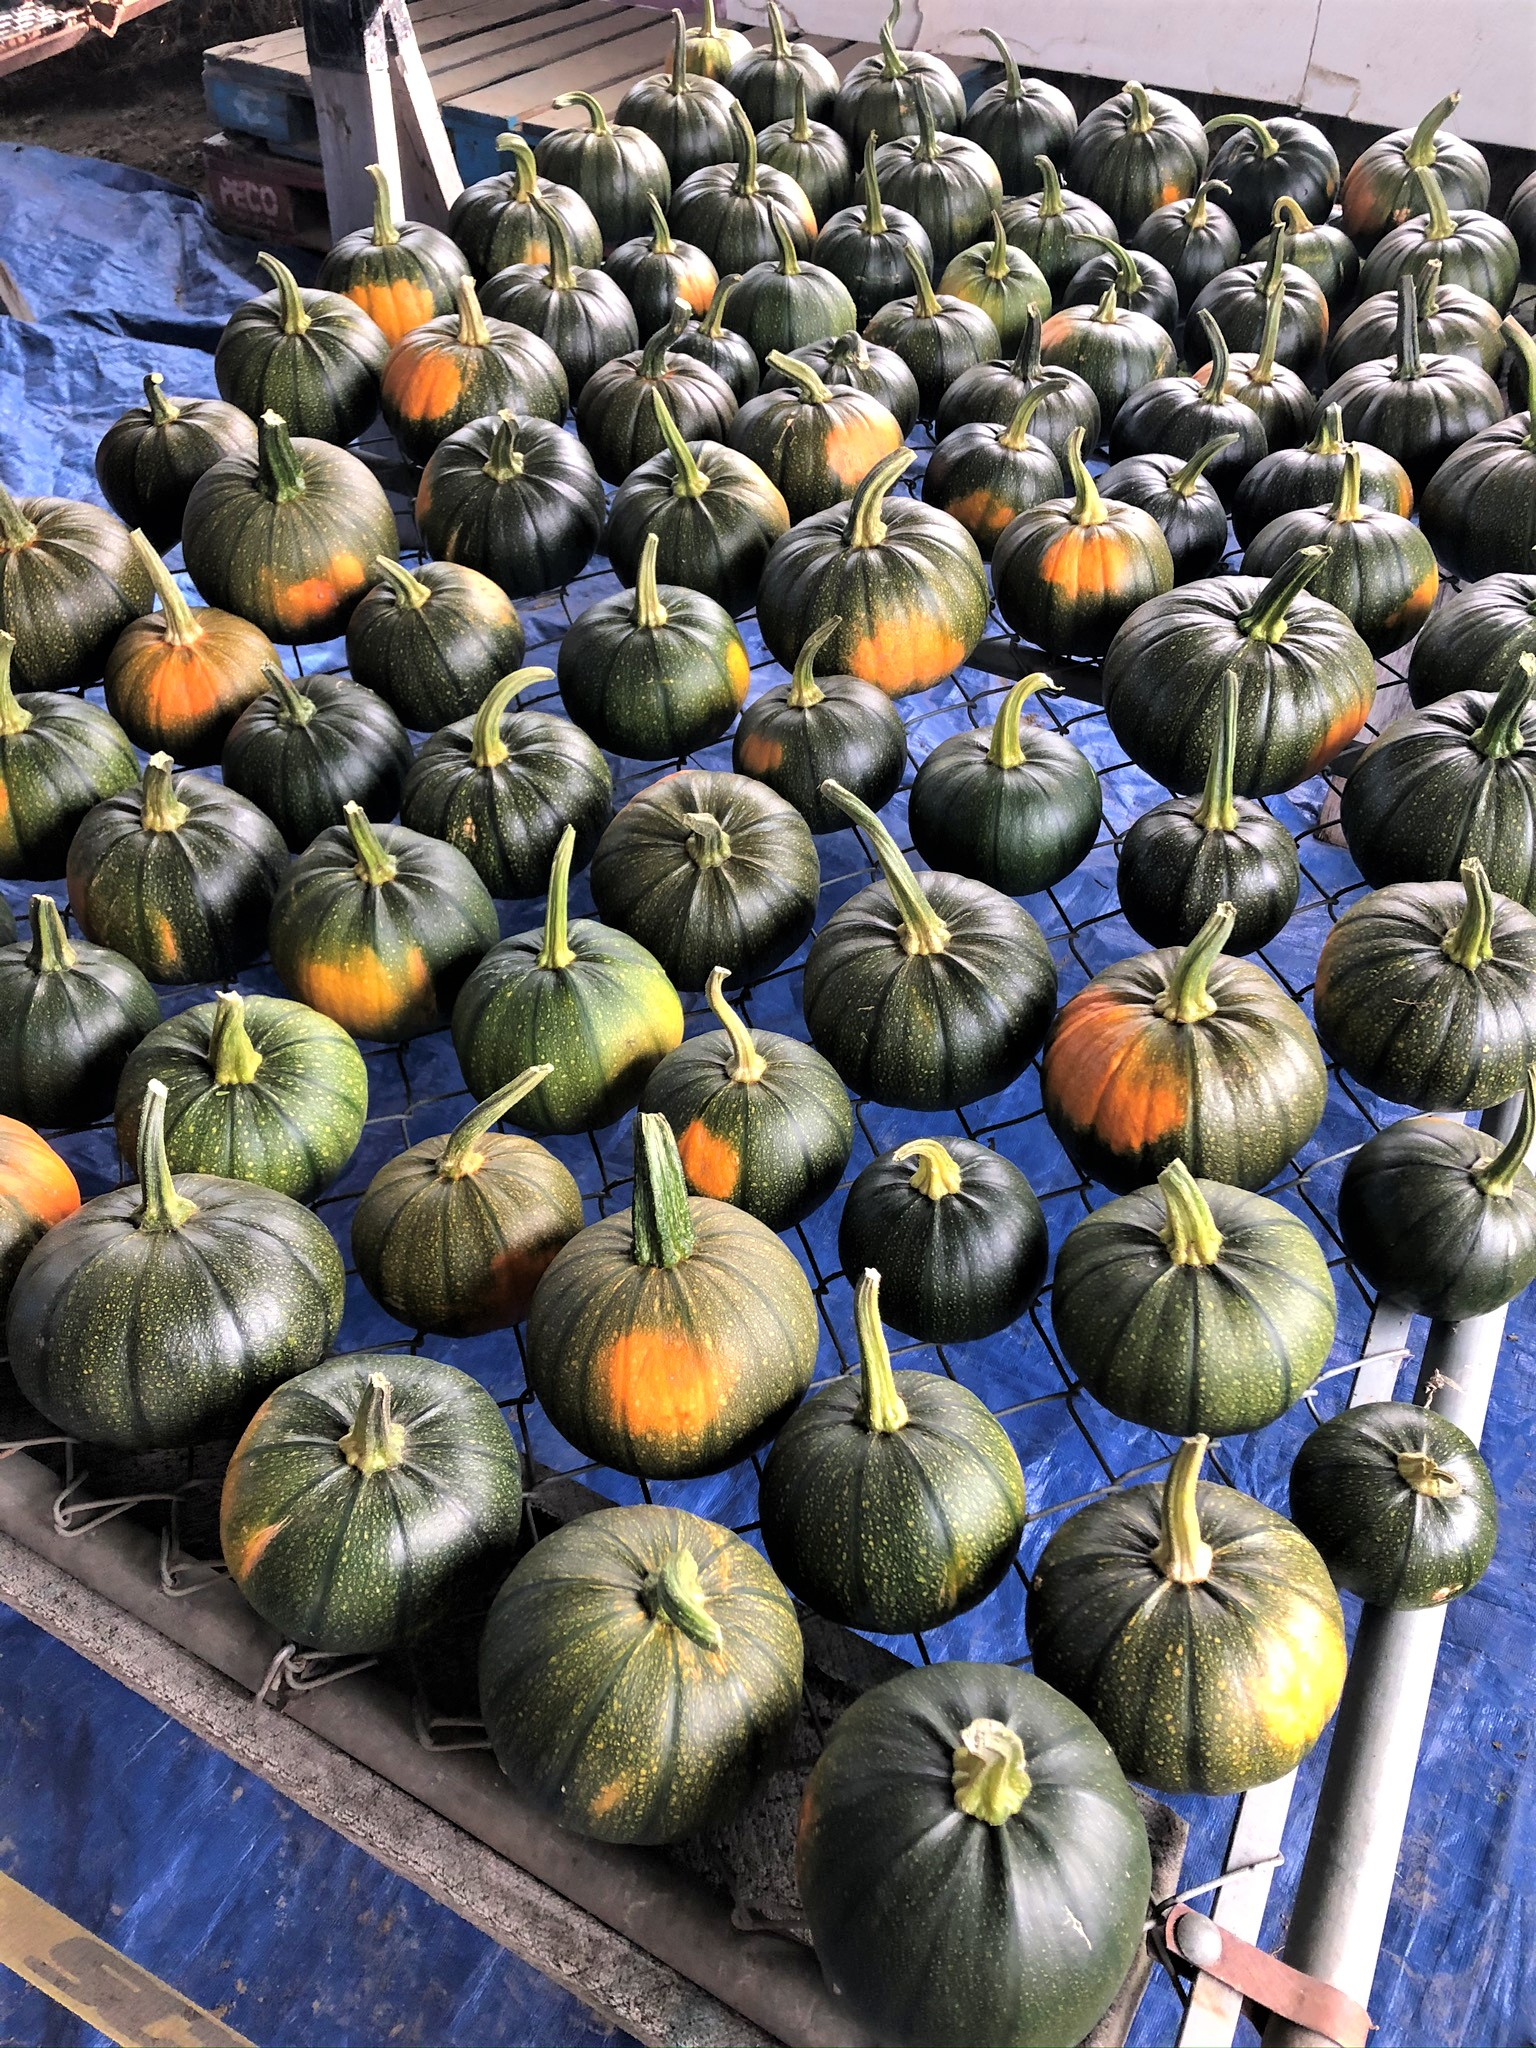 Pumpkin & Winter Squash Season Is Here!